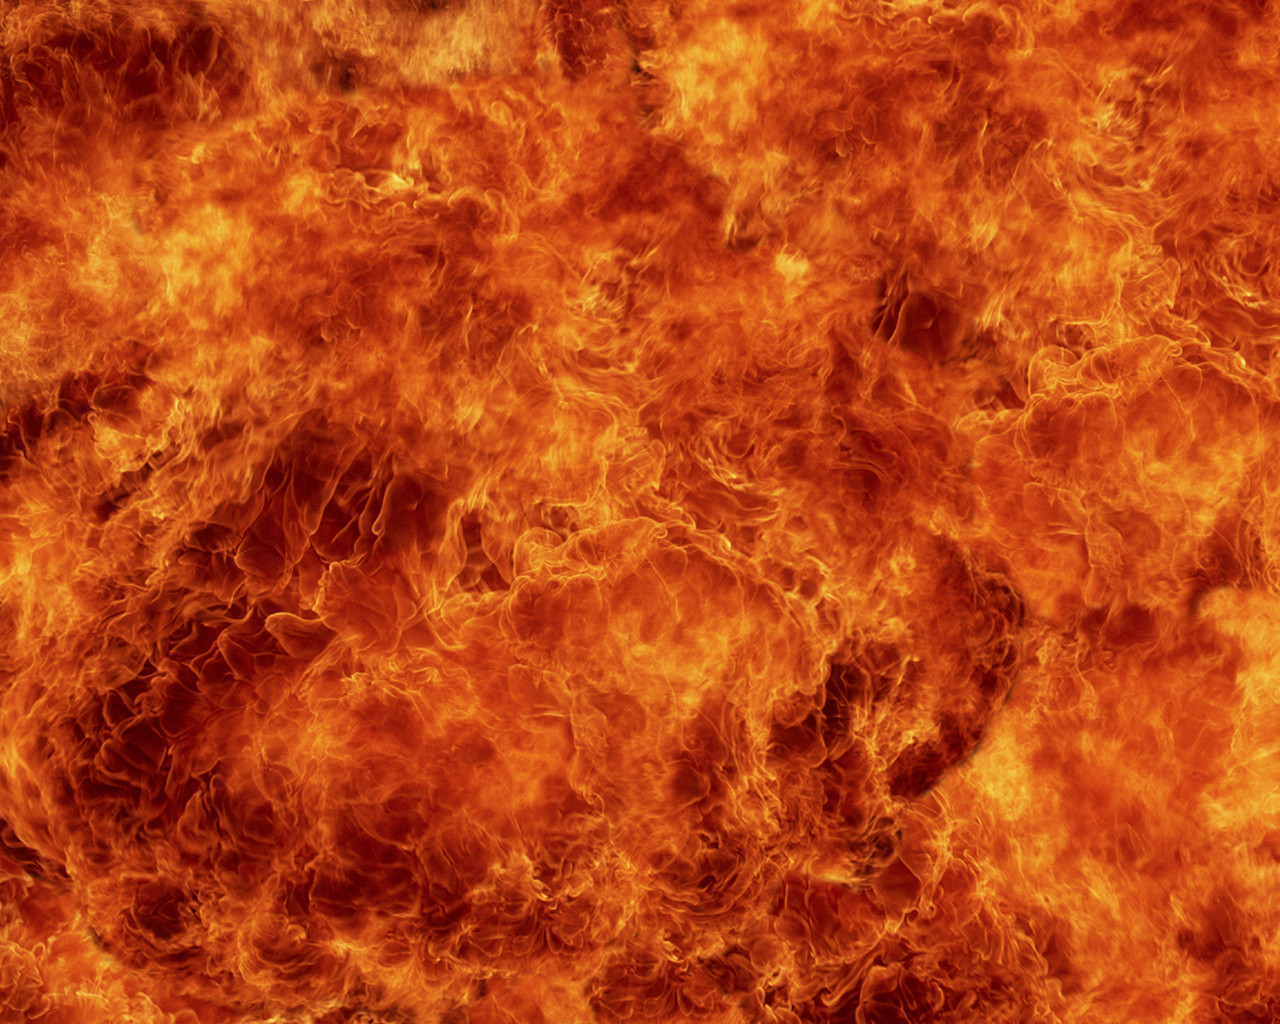 Man Sets Himself on Fire at